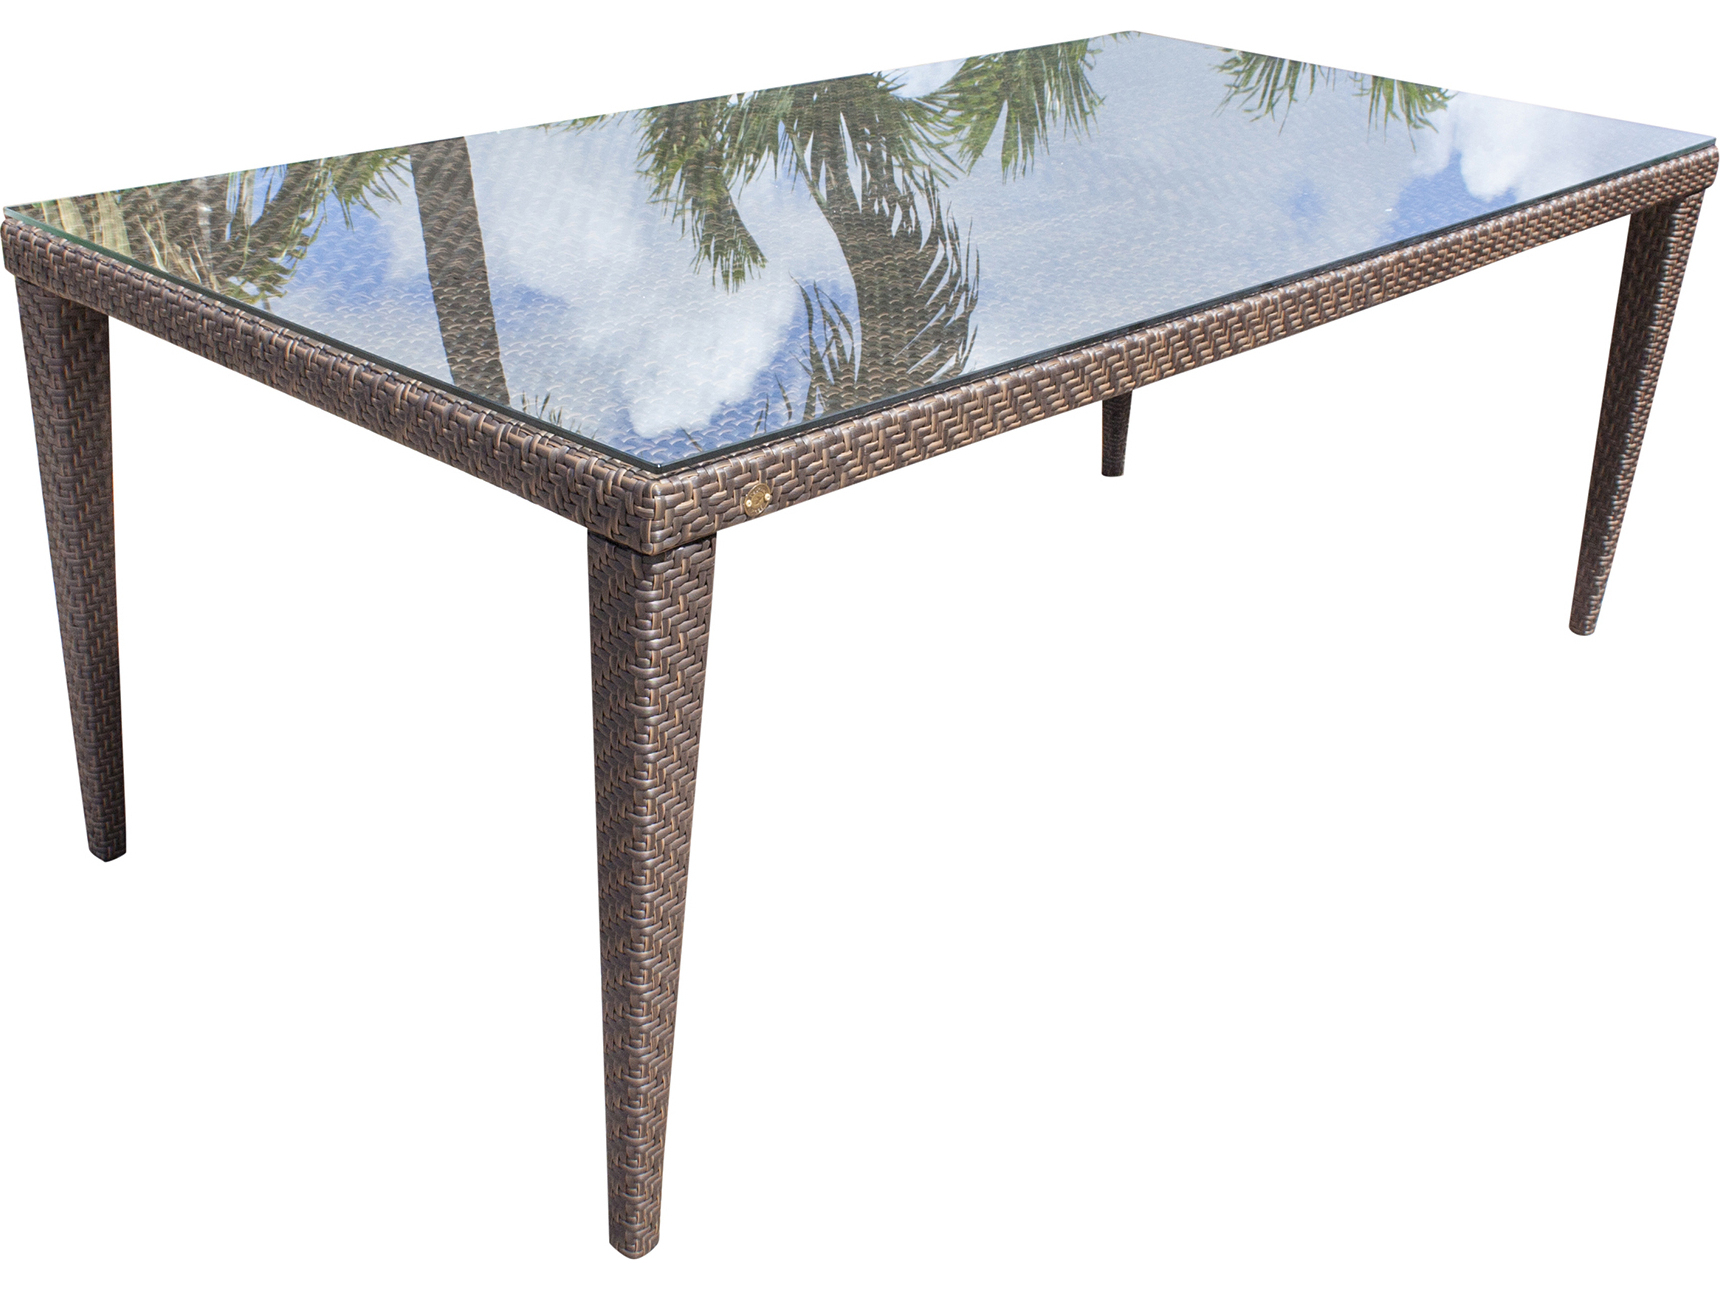 hospitality rattan outdoor soho java brown wicker 78w x 40d rectangular glass top dining table